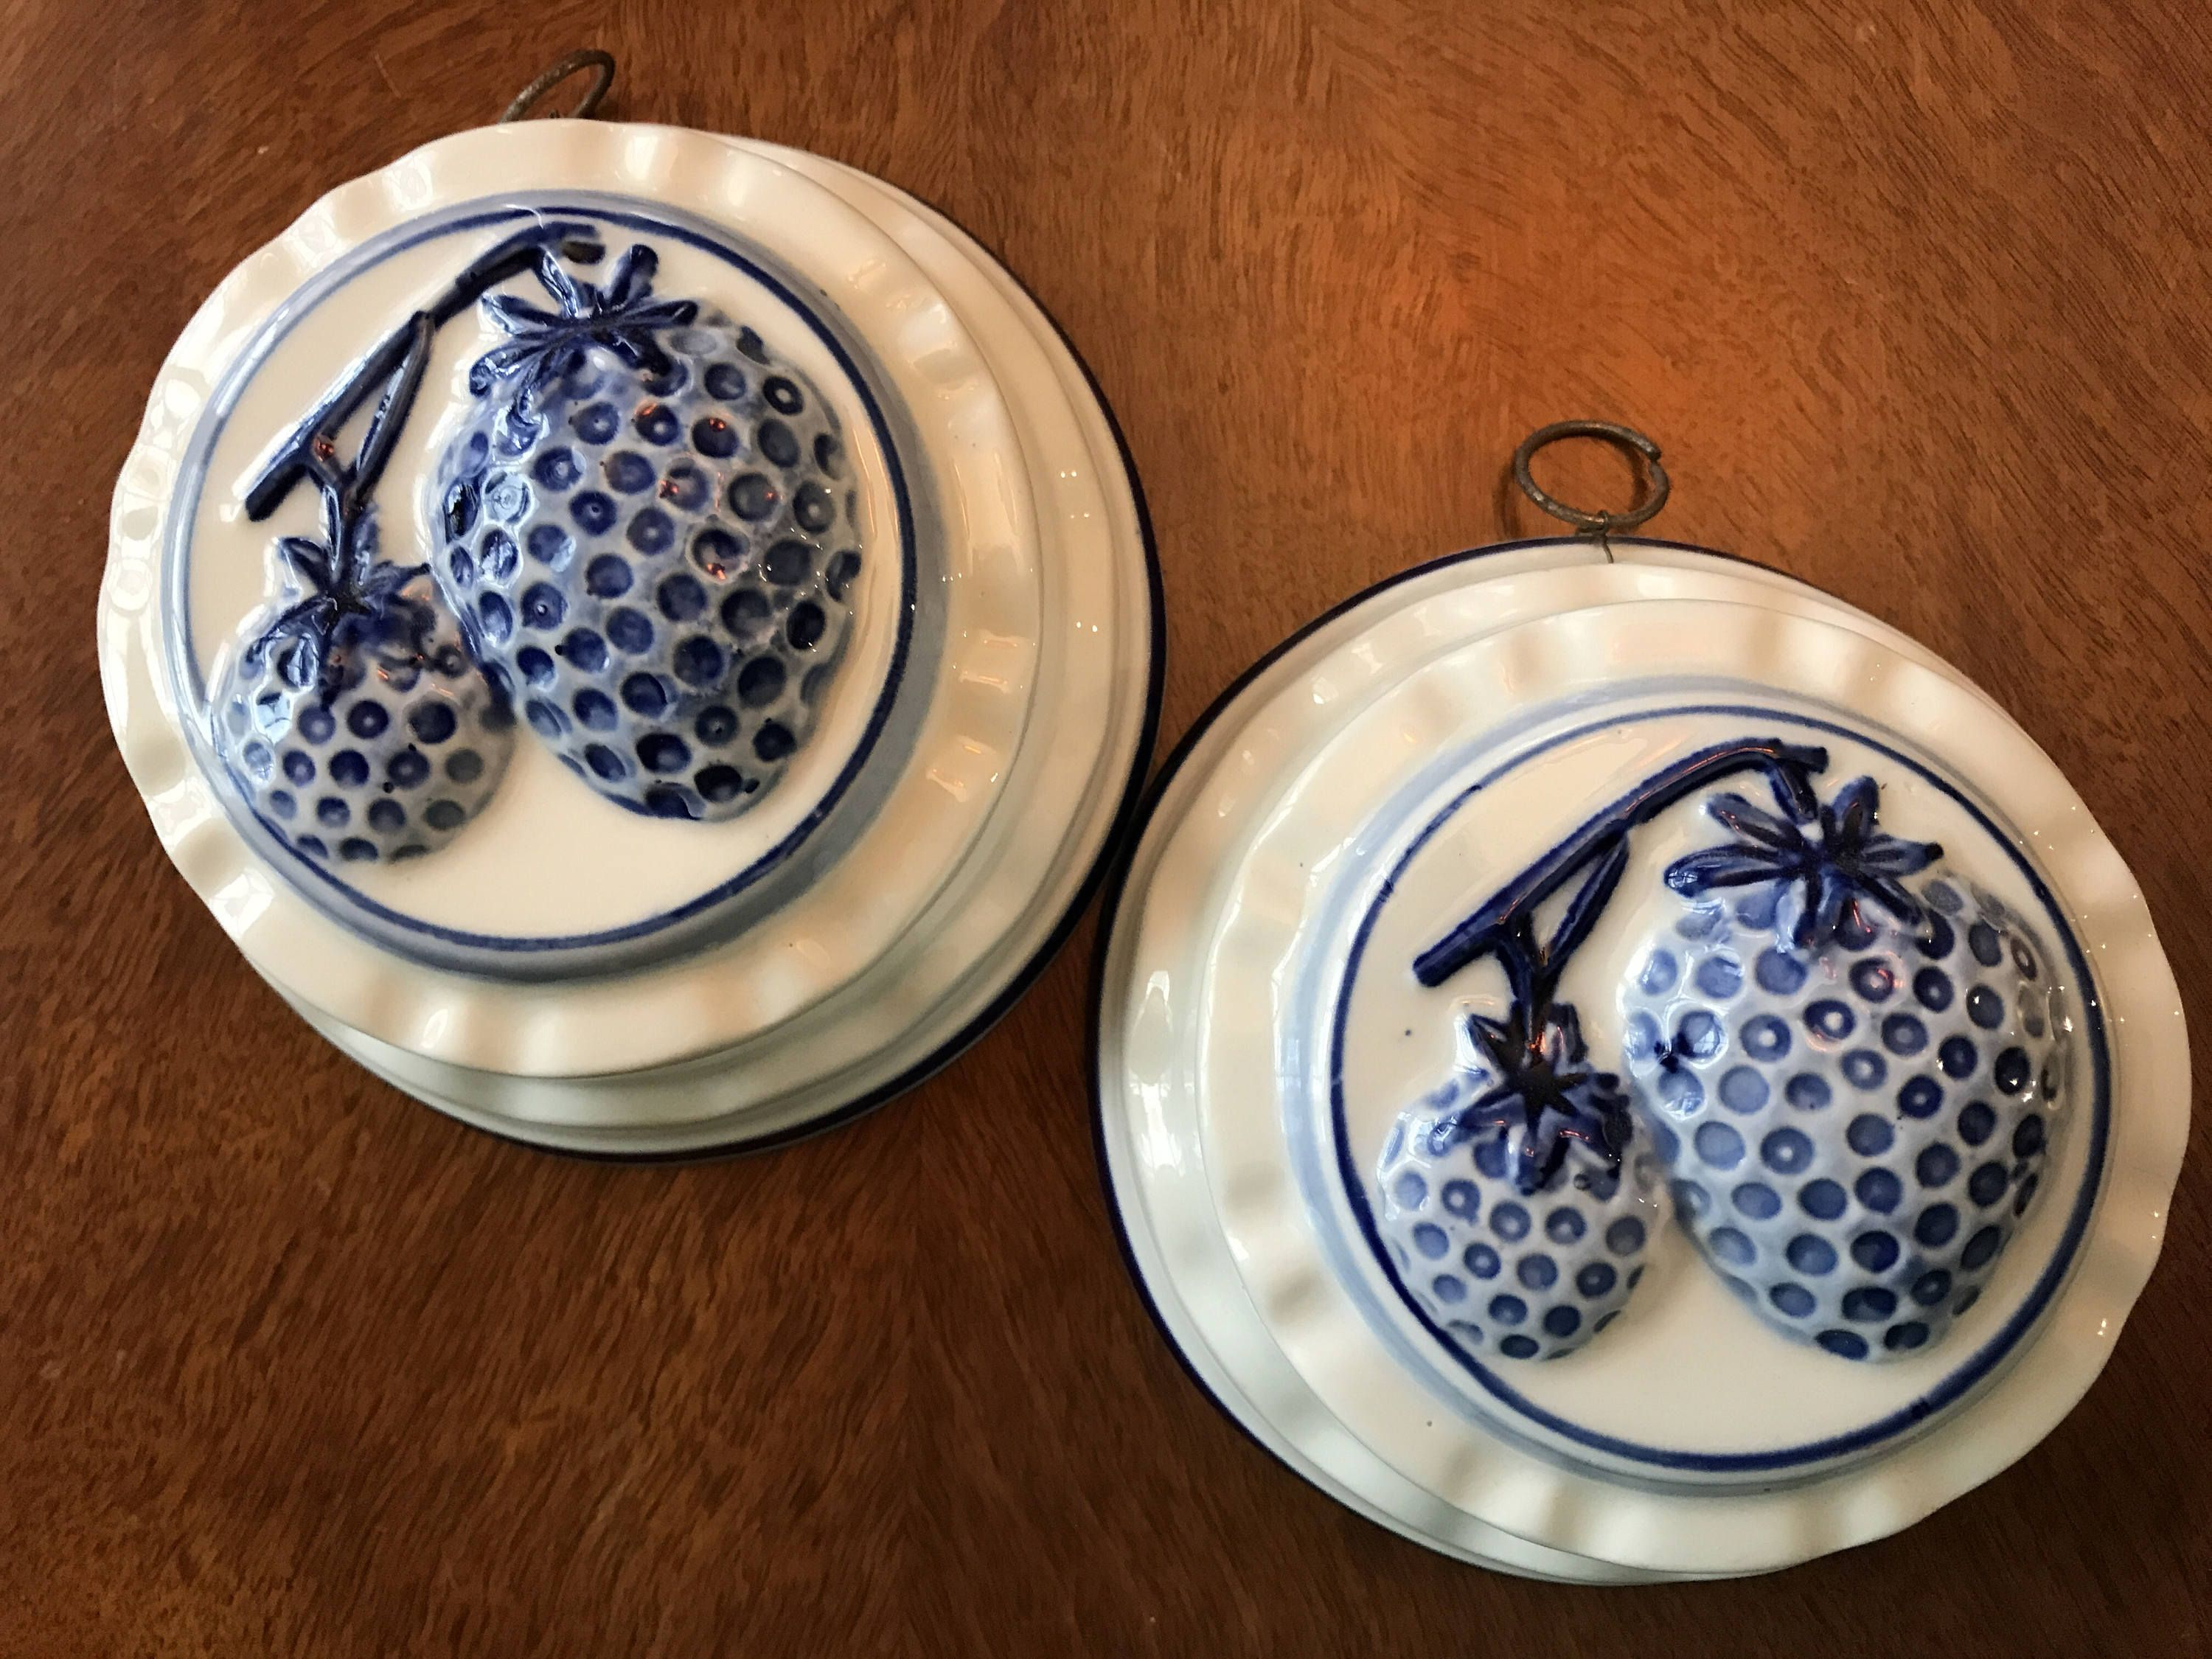 Delft Blue Strawberry Wall Hangings/Strawberry Delft Molds ...